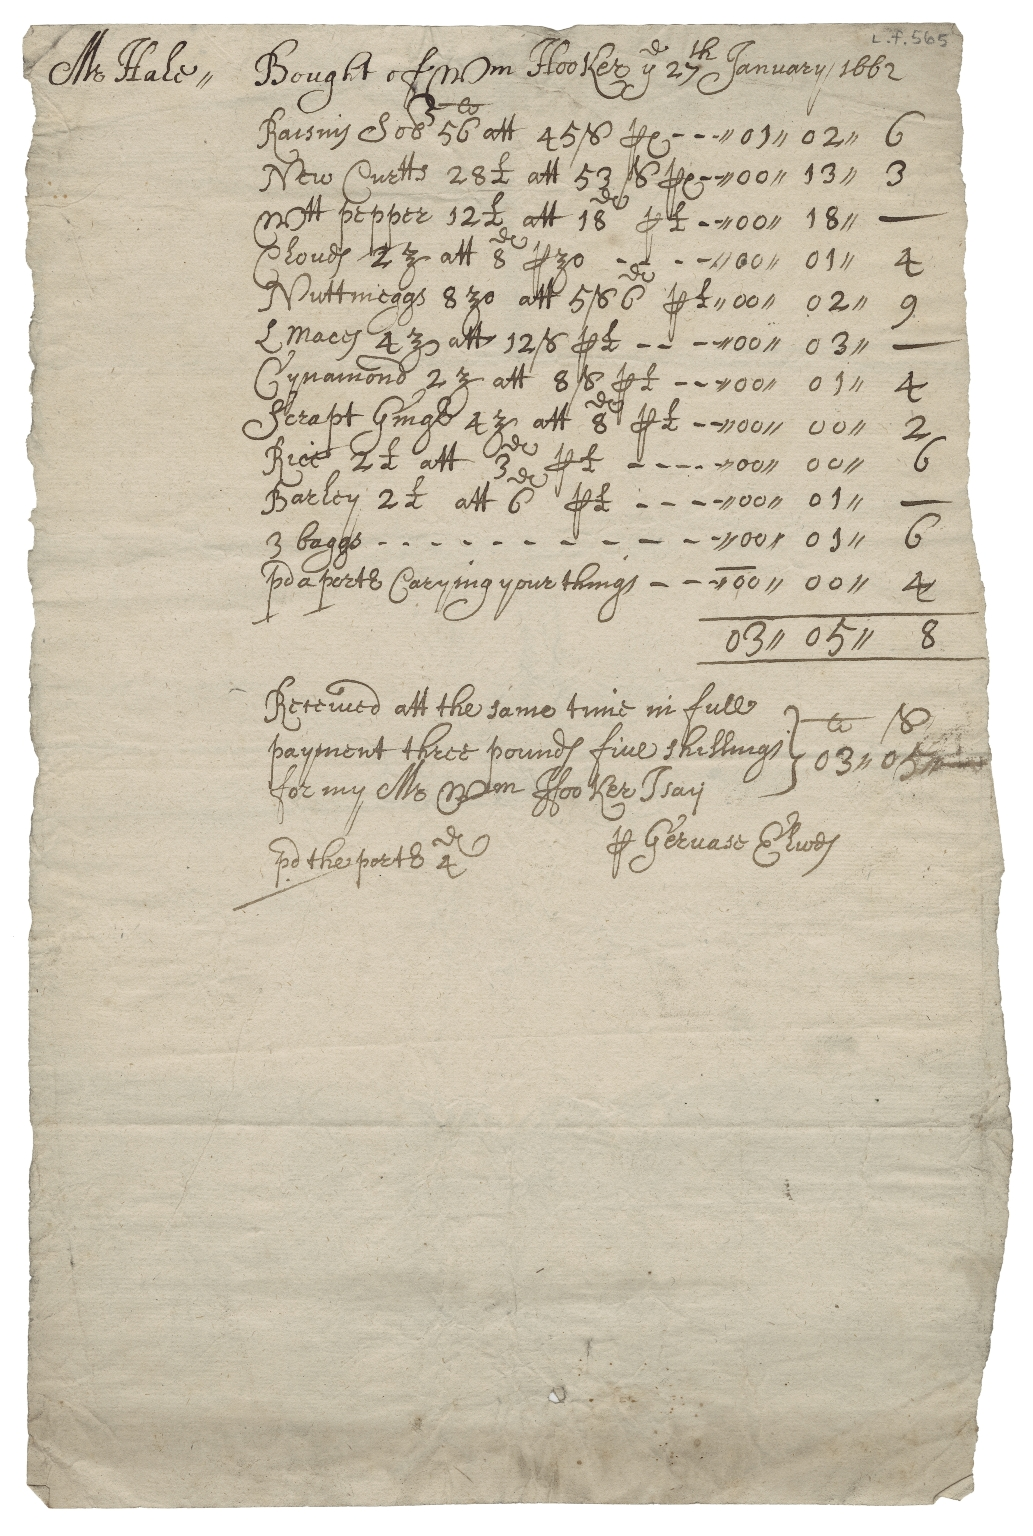 Receipted bill from Gervase Elwes to Mr. Hale for goods bought of William Hooker